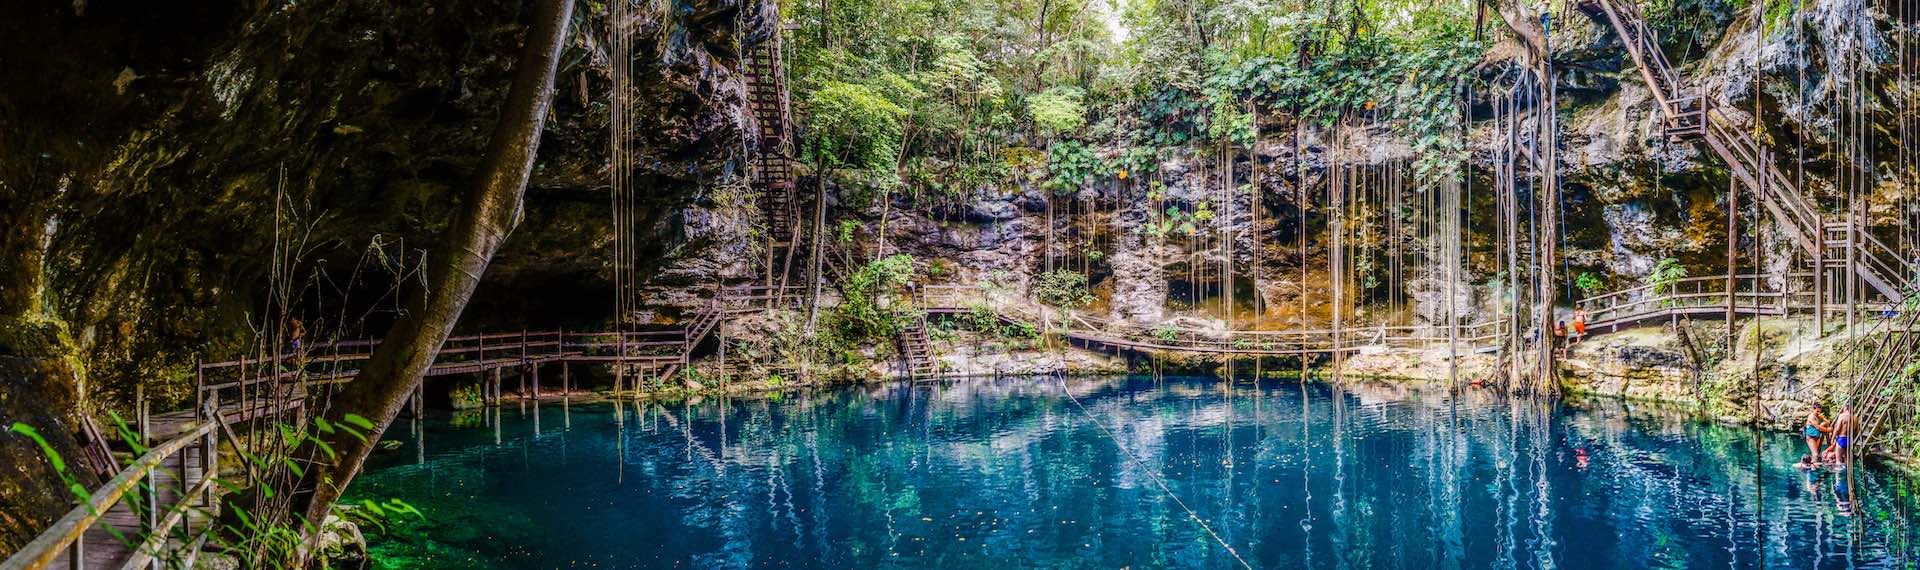 Renew yourself in the incredible cenotes in Valladolid Mexico